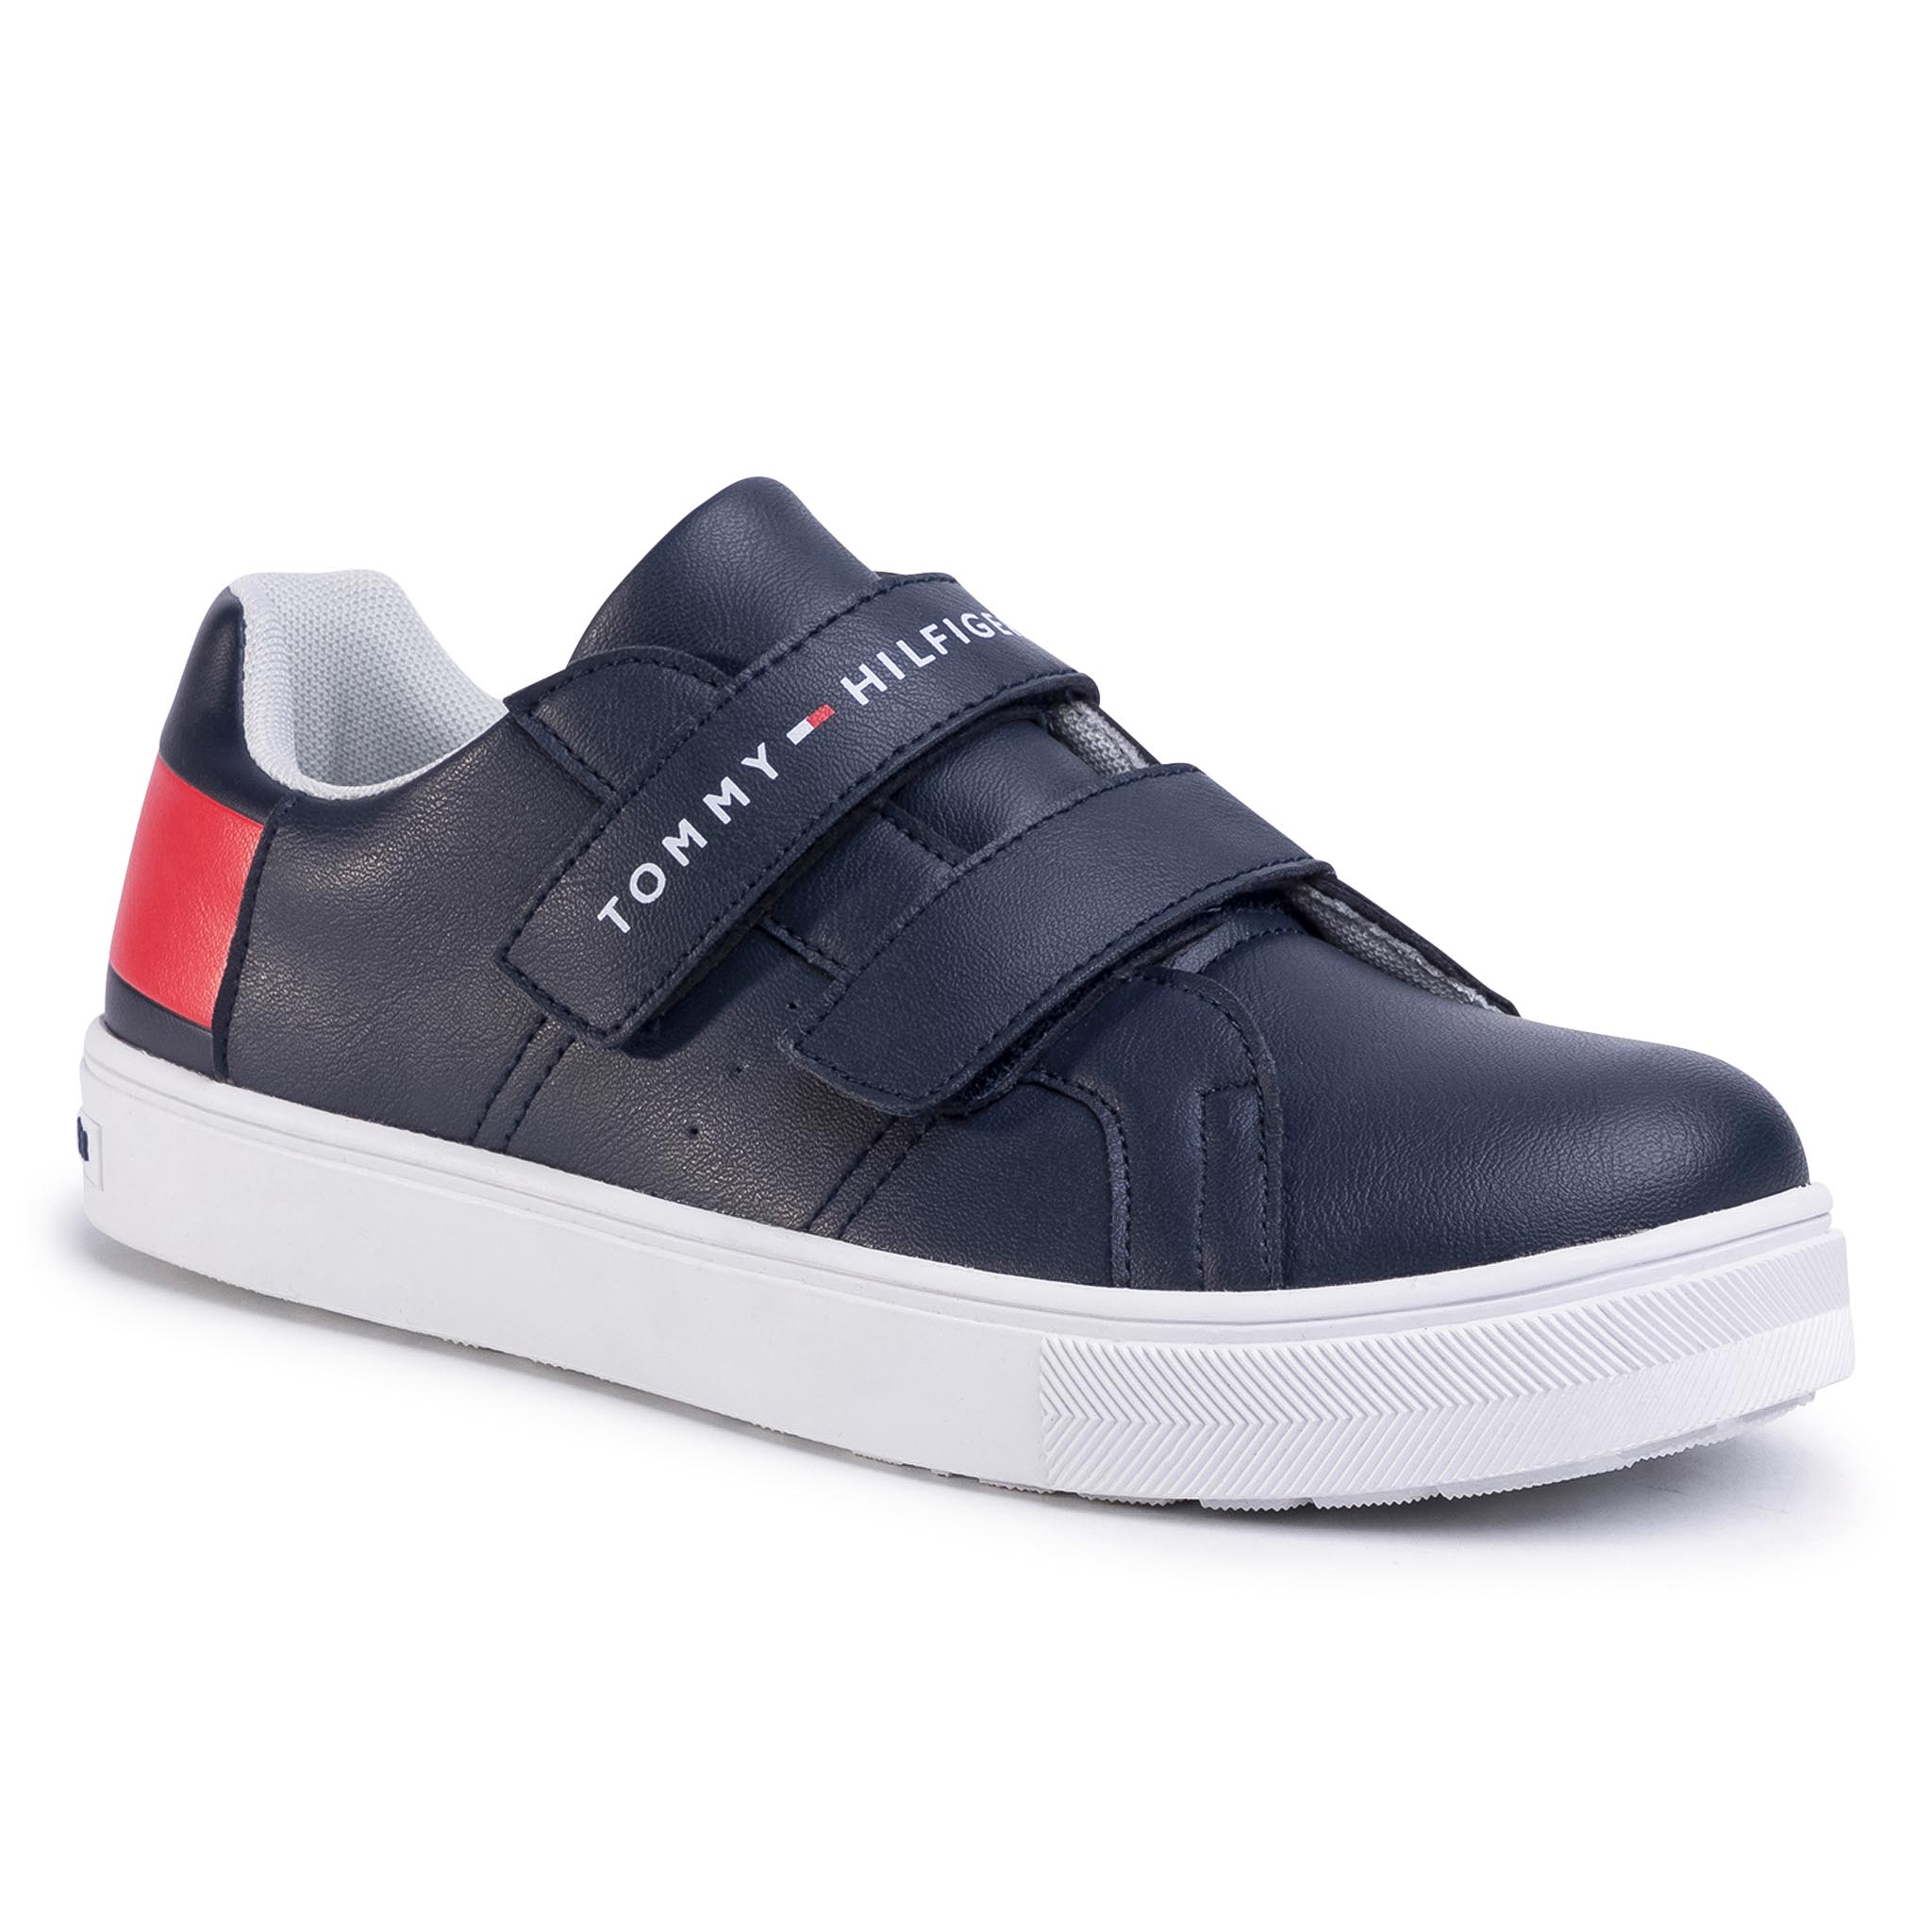 Sneakers TOMMY HILFIGER - Low Cut Velcro Sneaker T3B4-30719-0193 D Blue/White/Red Y004